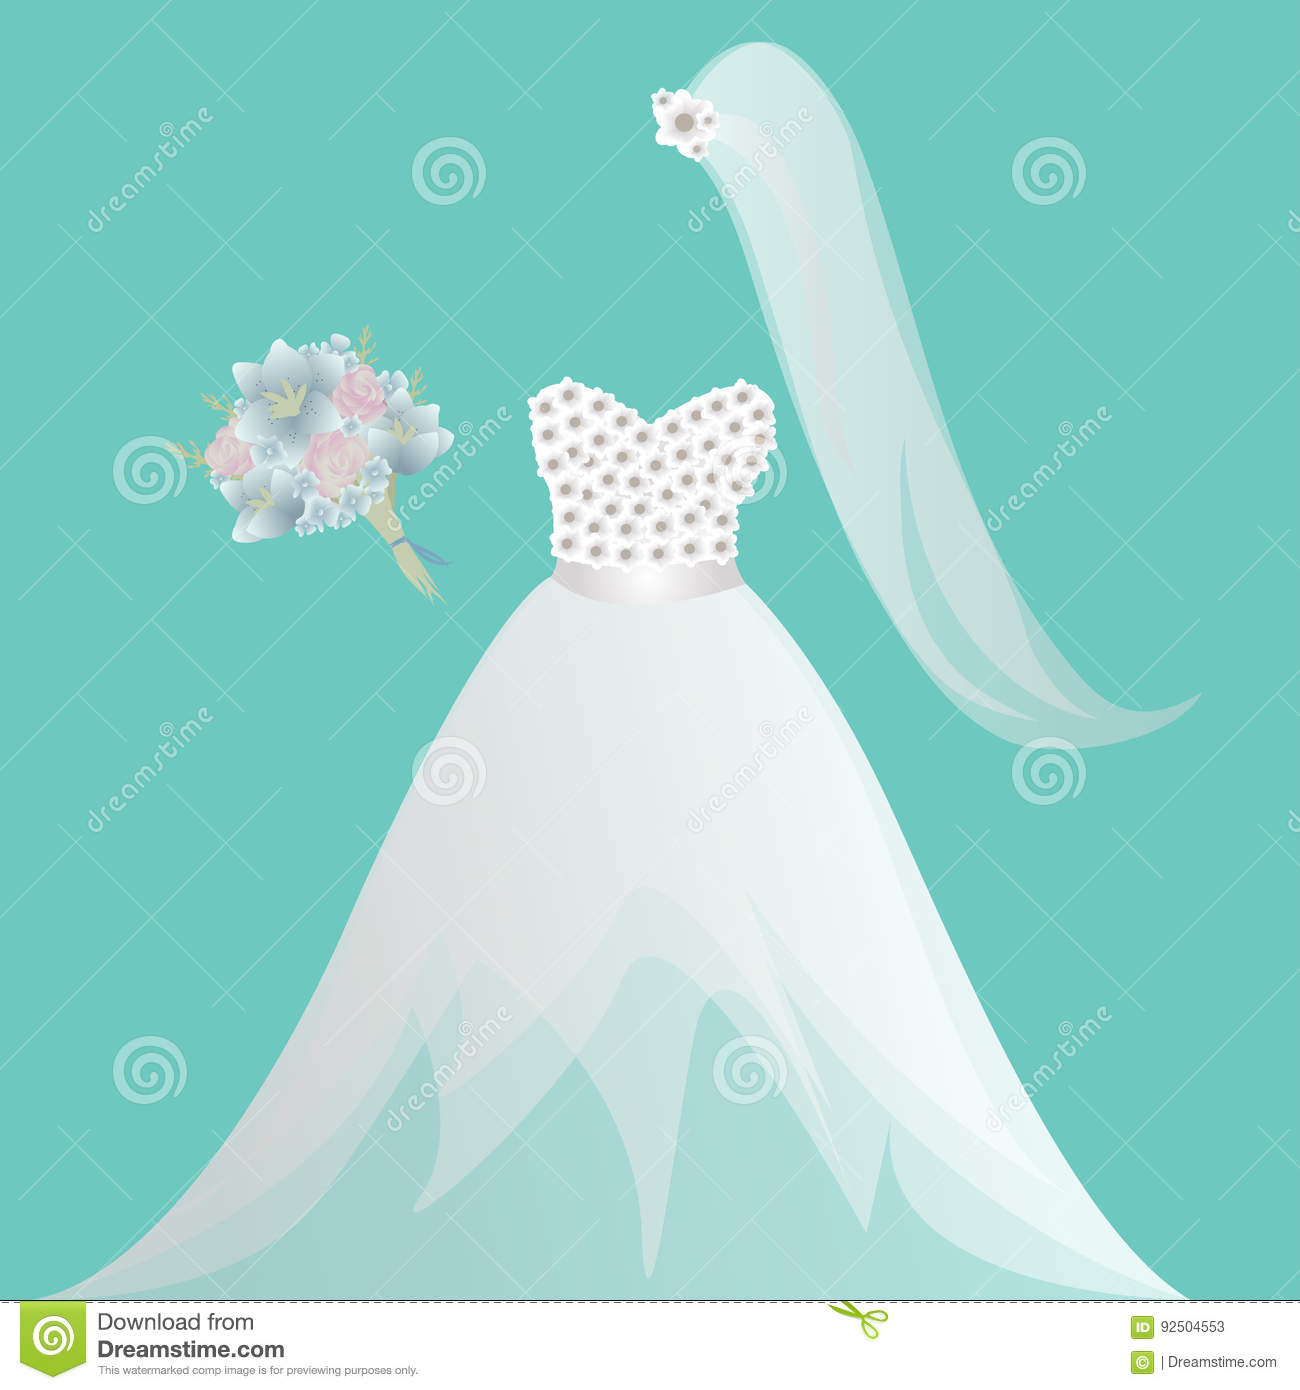 Bride, Bridal Gown, Bridal Shower, Invitation, Getting Married ...